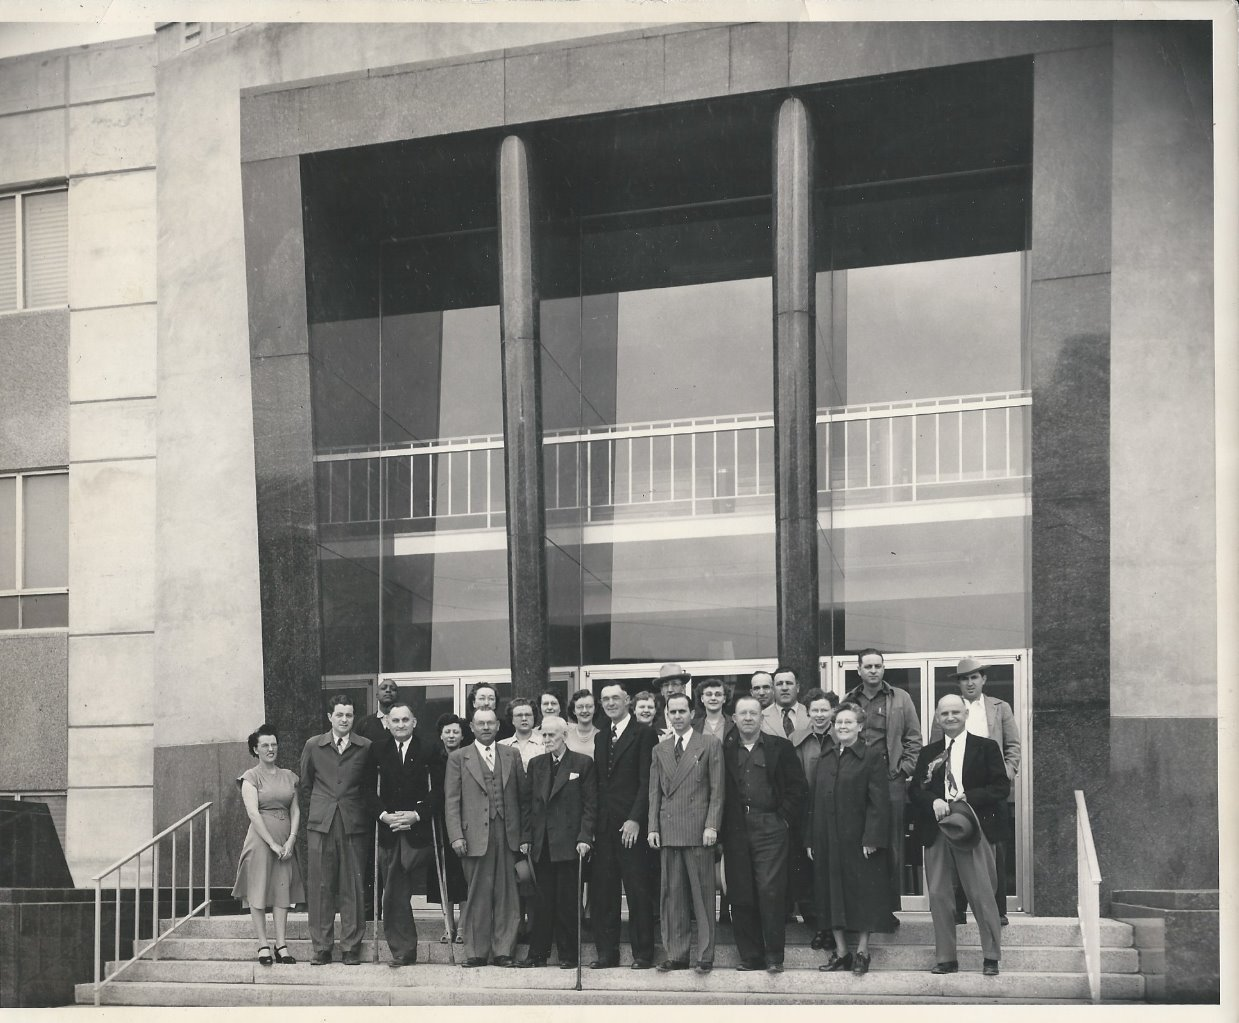 Courthouse Staff